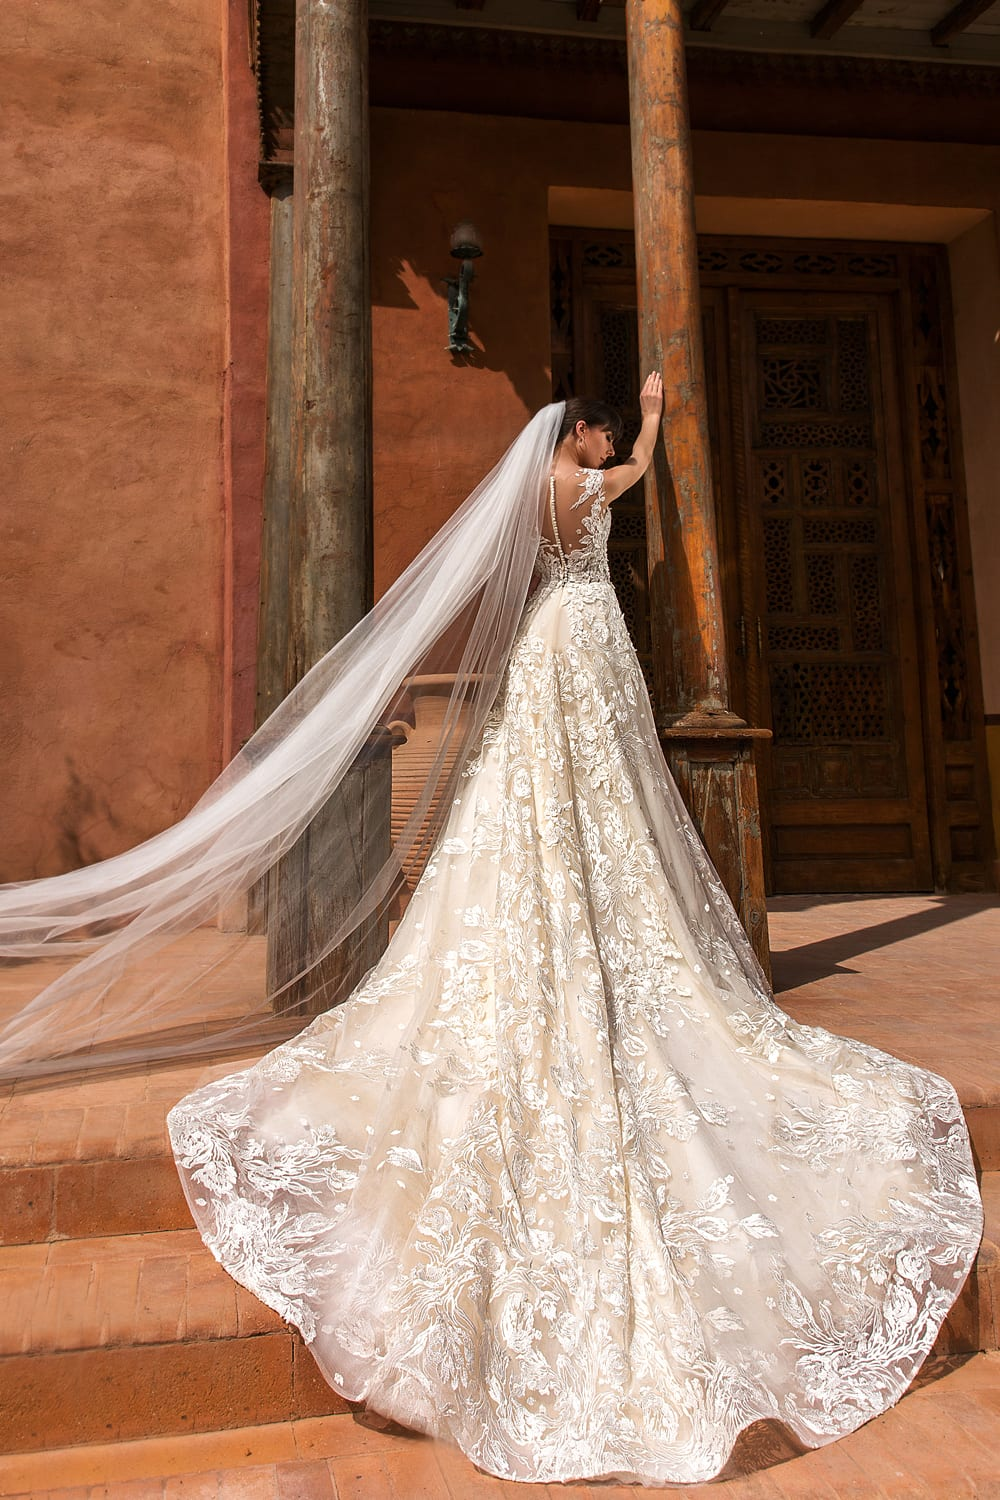 Cool Wedding Outfit Gowns For Women